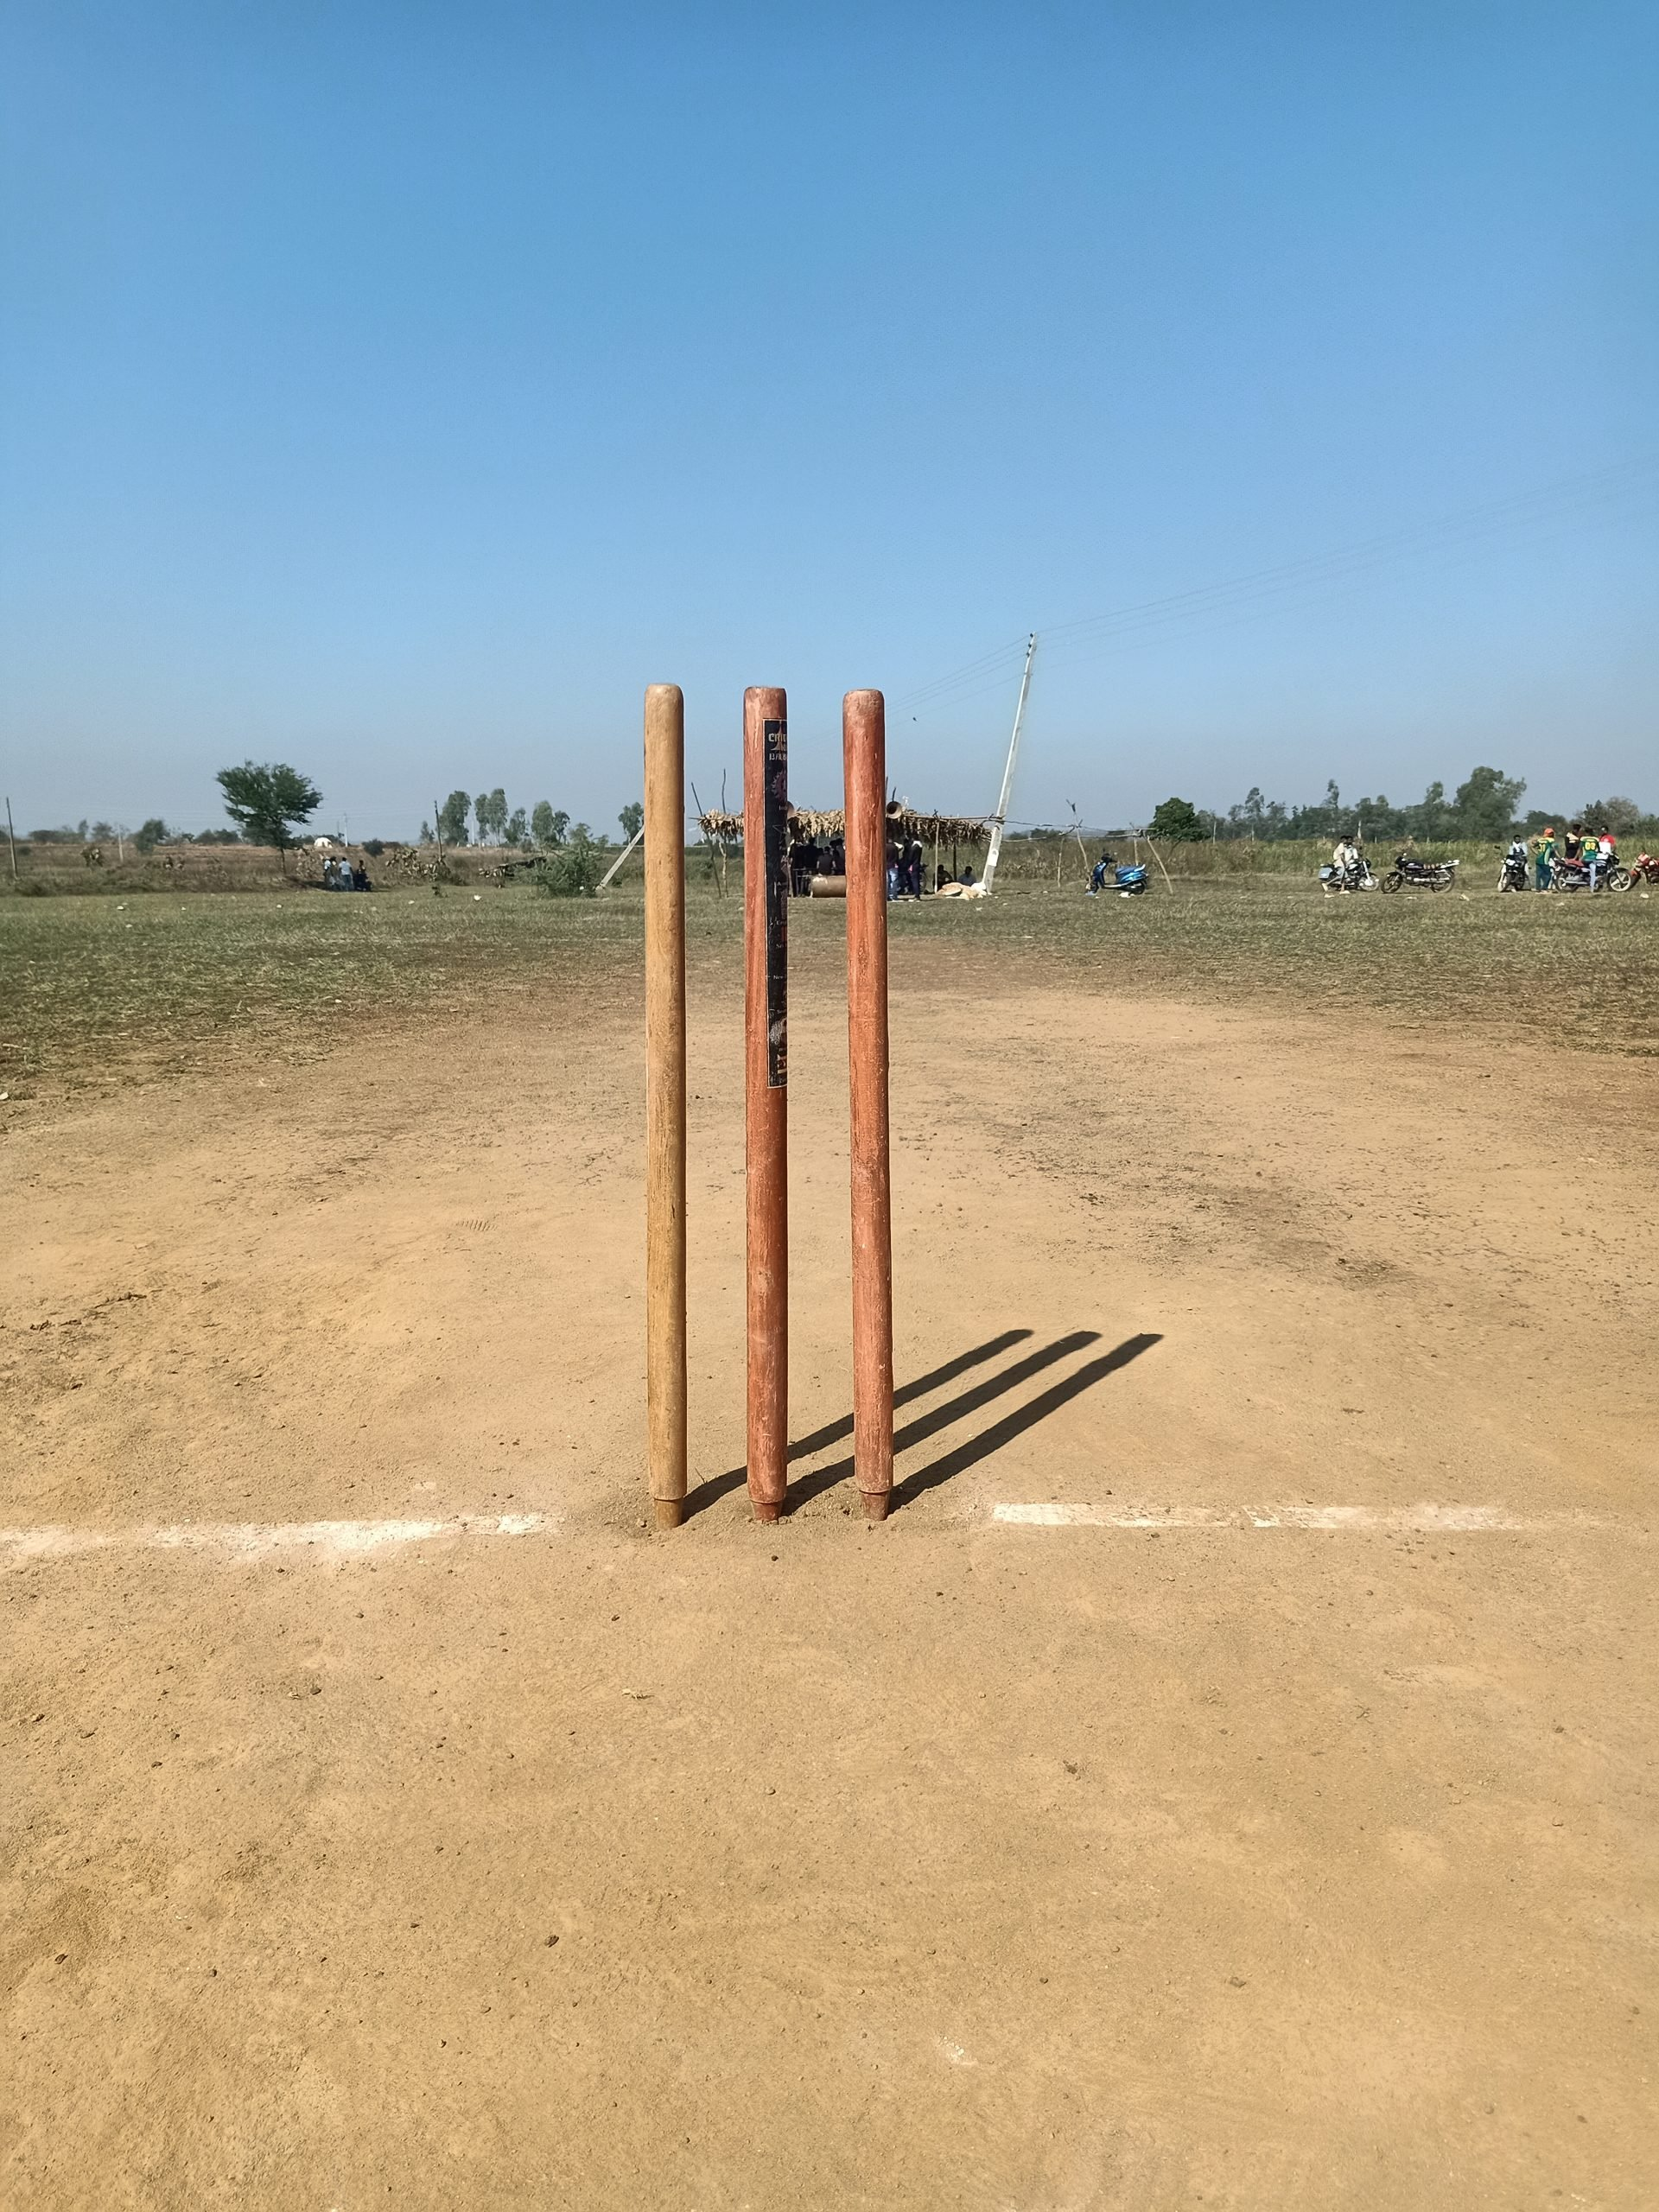 Cricket stumps